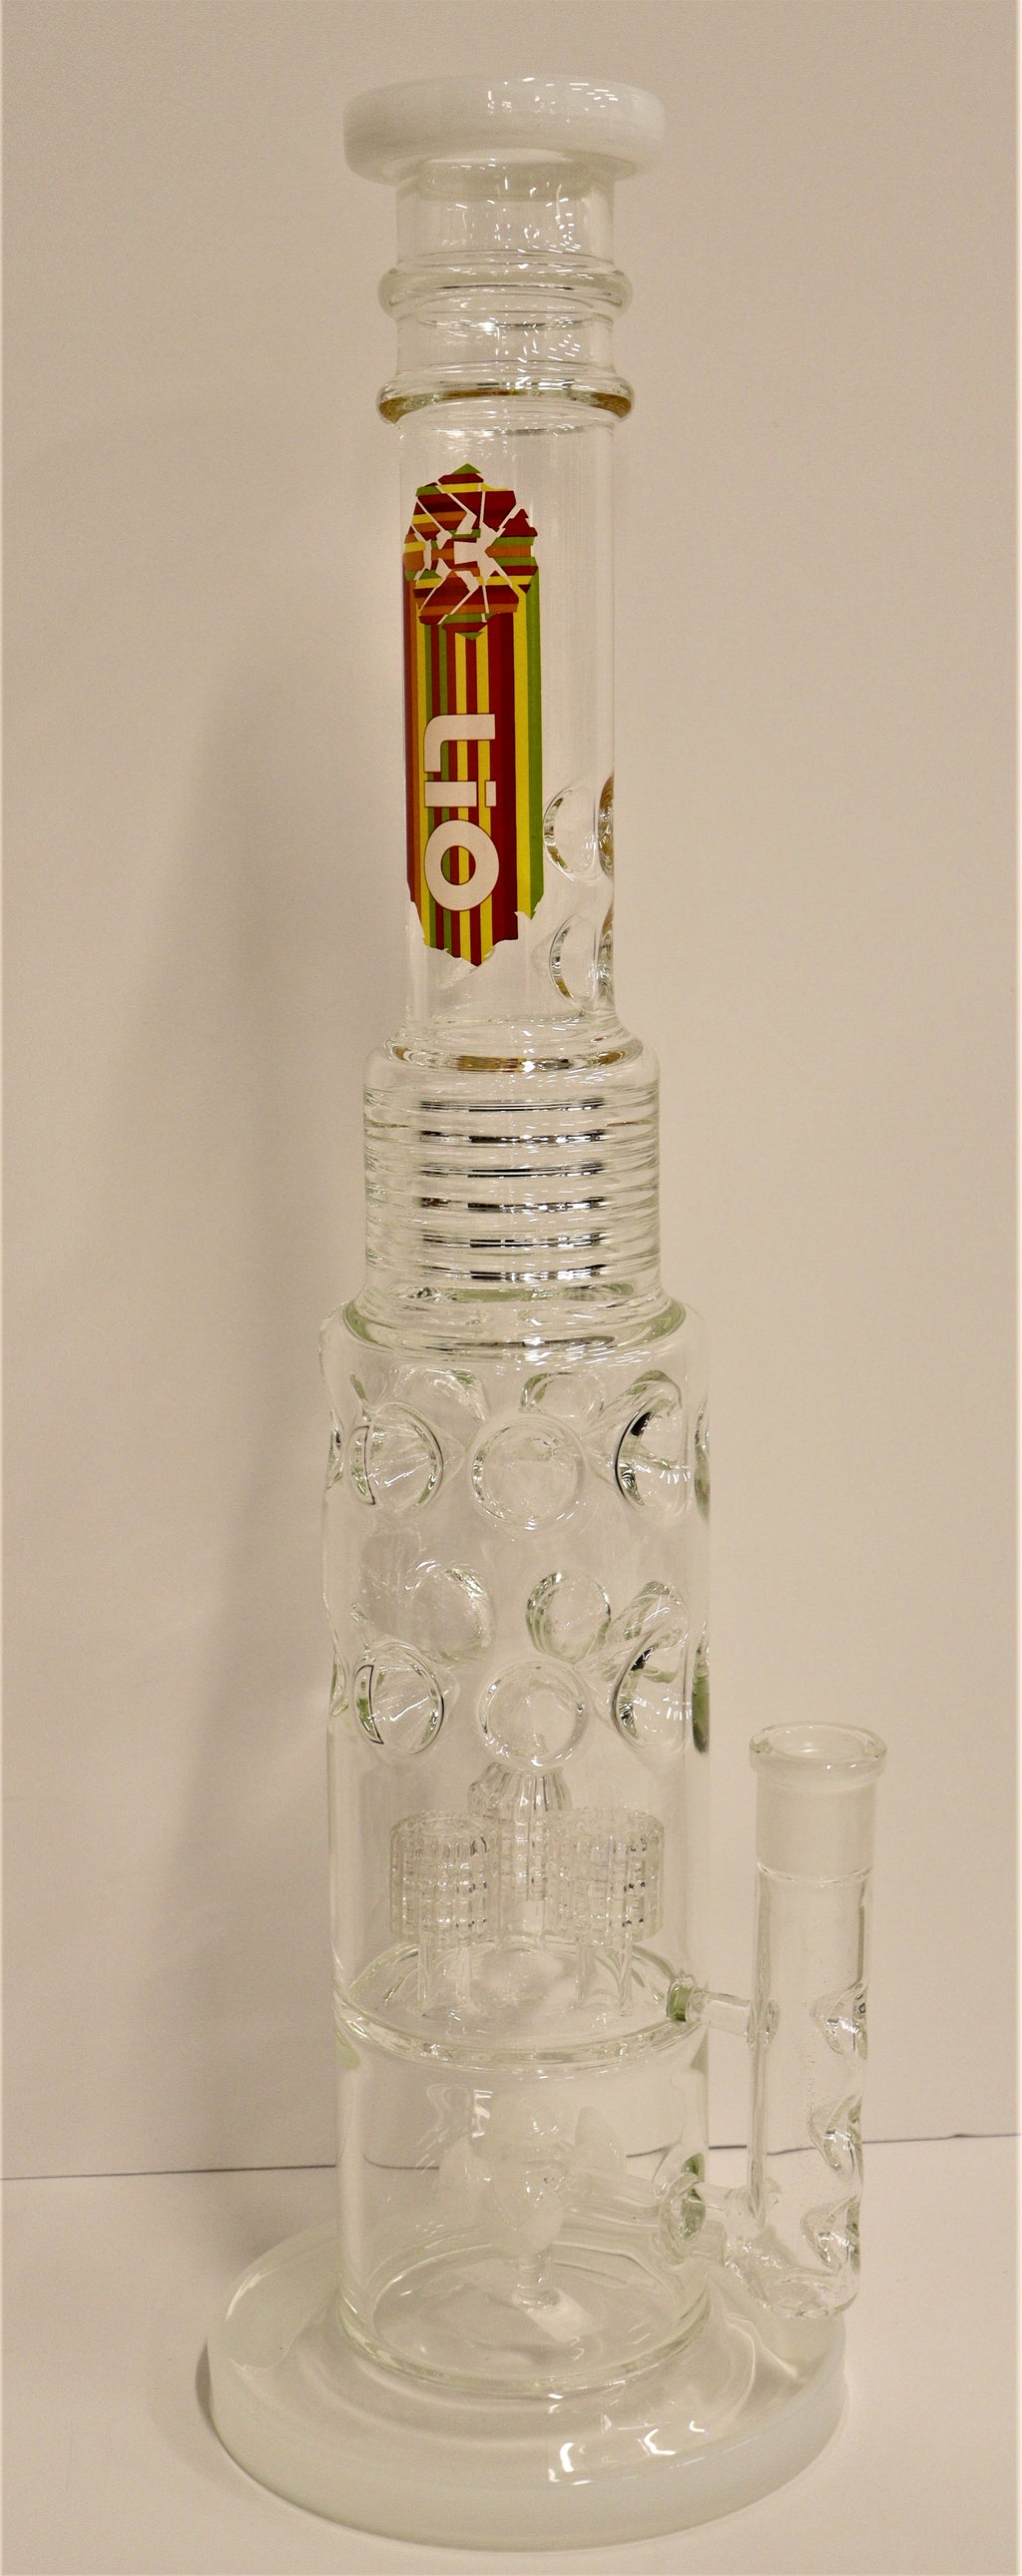 LiO Water Pipe - Temple - AZARA VAPE